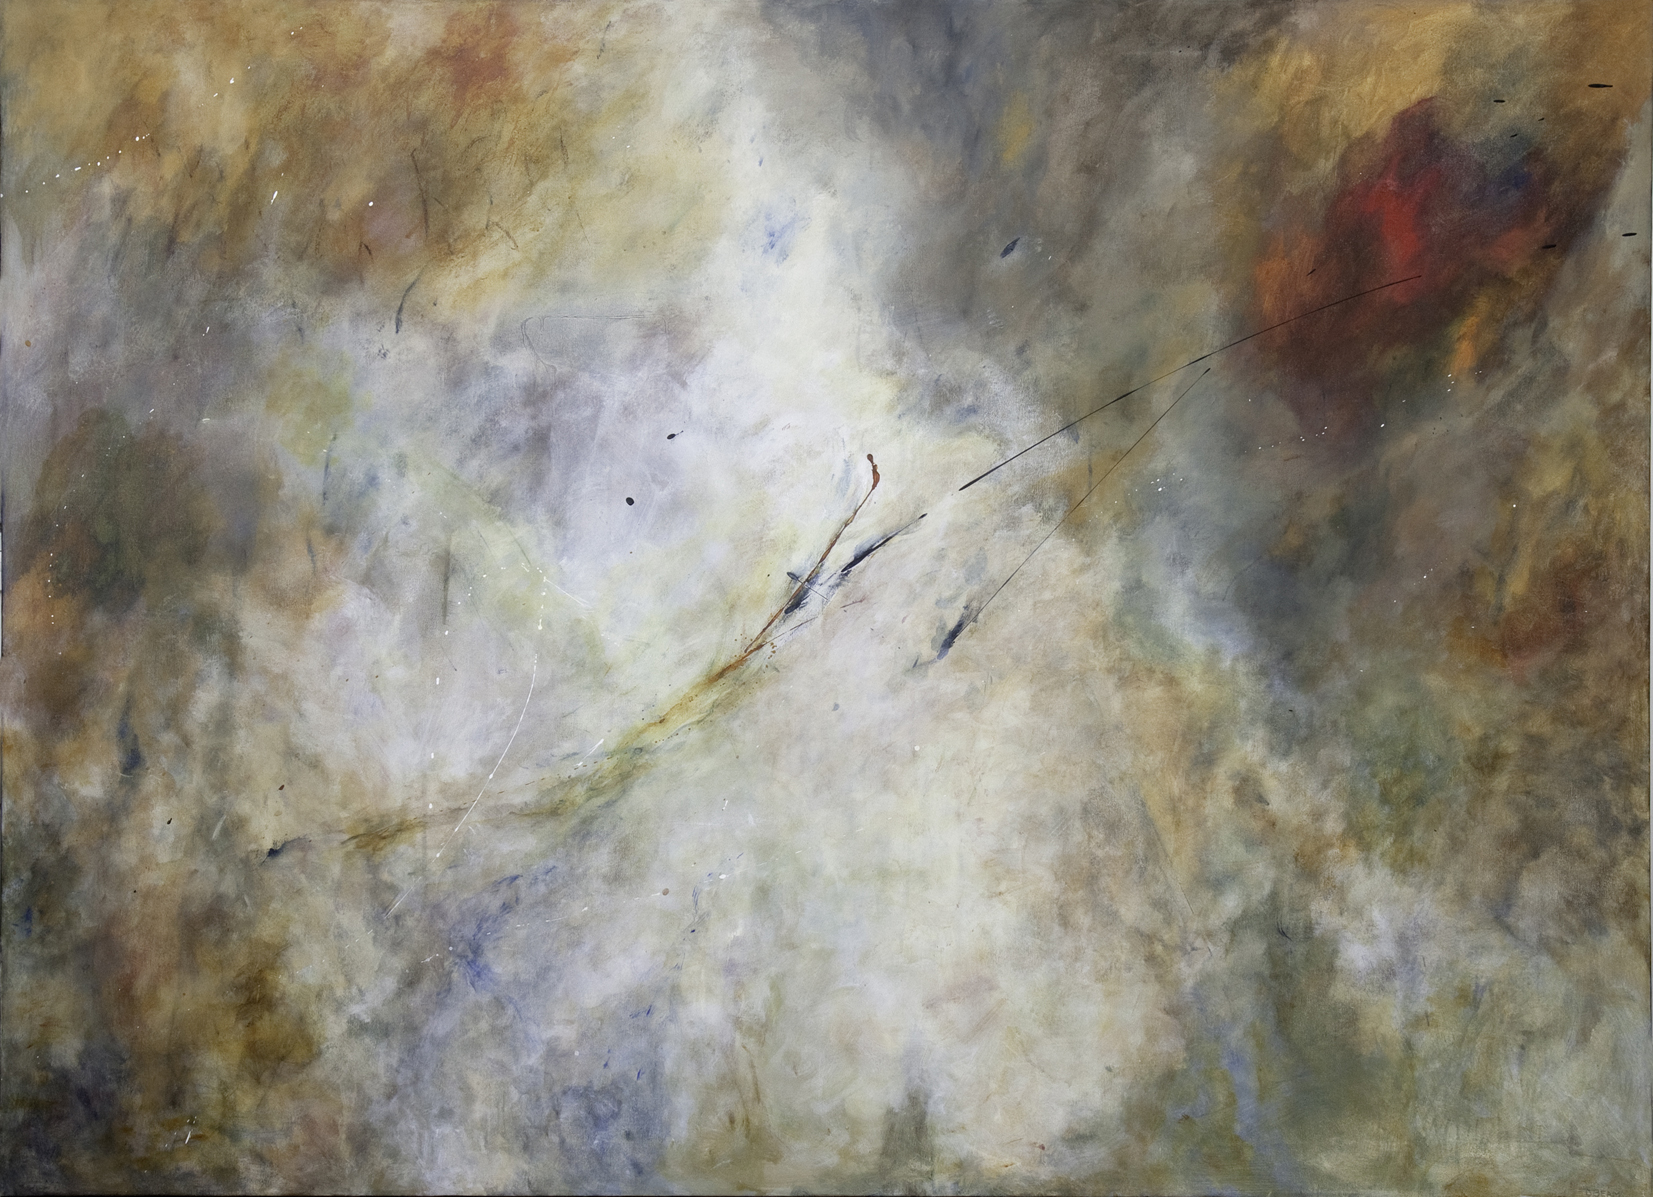 FLIGHT OF PASSION   BY DAN BEAM, ACRYLIC ON CANVAS/ FROM THE PERSONAL COLLECTION OF KARYN BARSA